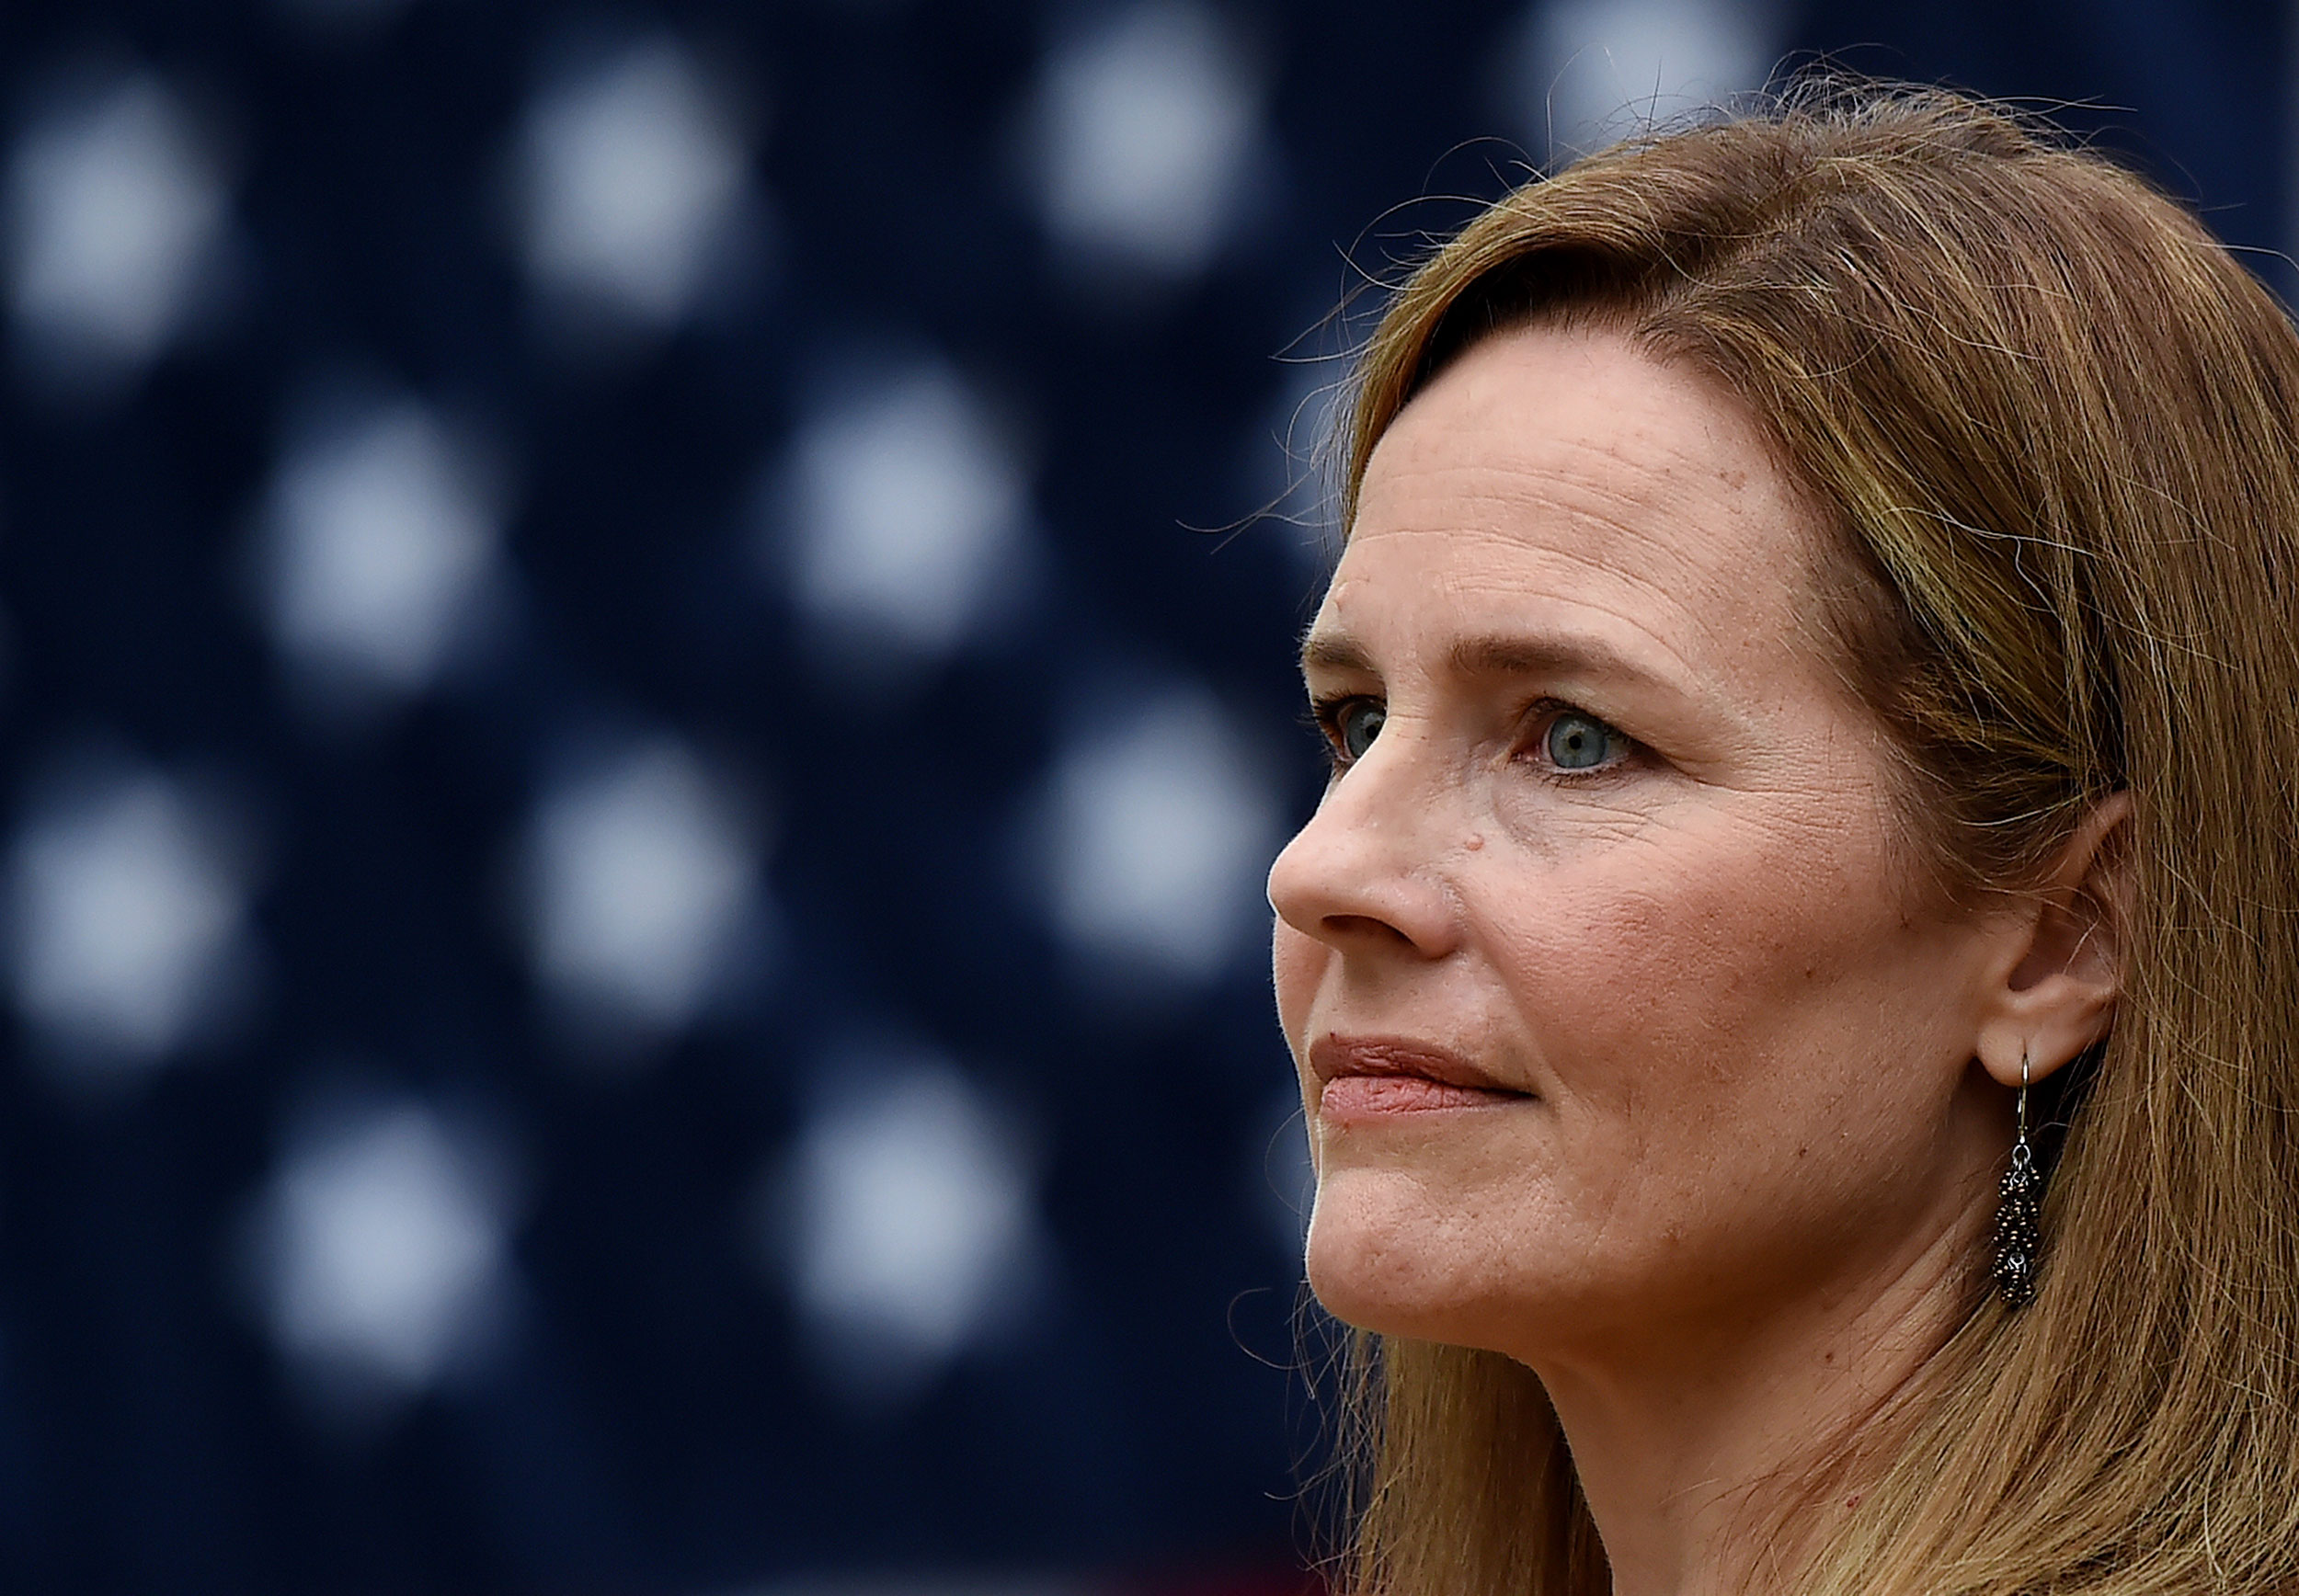 President Trump nominated Judge Amy Coney Barrett to the Supreme Court on Saturday. Some Senate Democrats on the Judiciary Committee have called for Barrett to recuse herself from any cases related to the presidential election if she is confirmed.